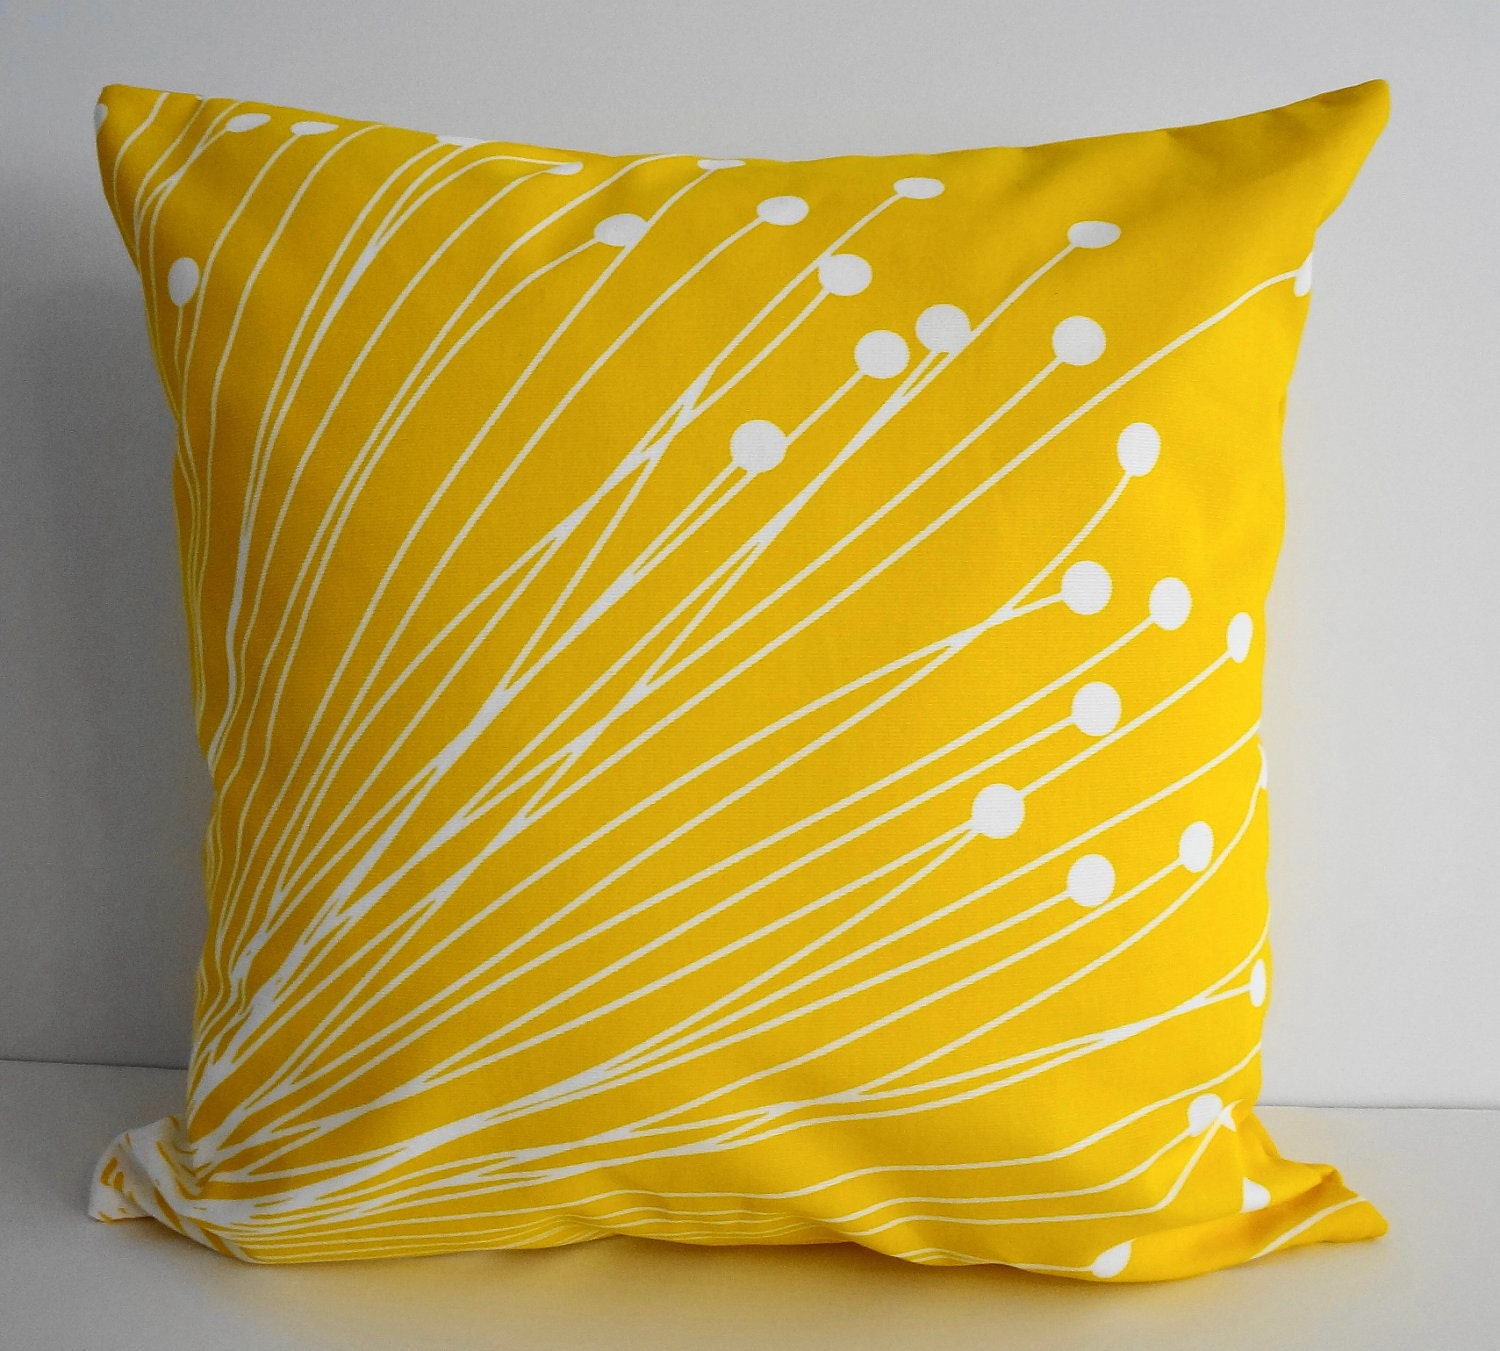 Yellow Starburst Pillow Covers Decorative Throw Pillow